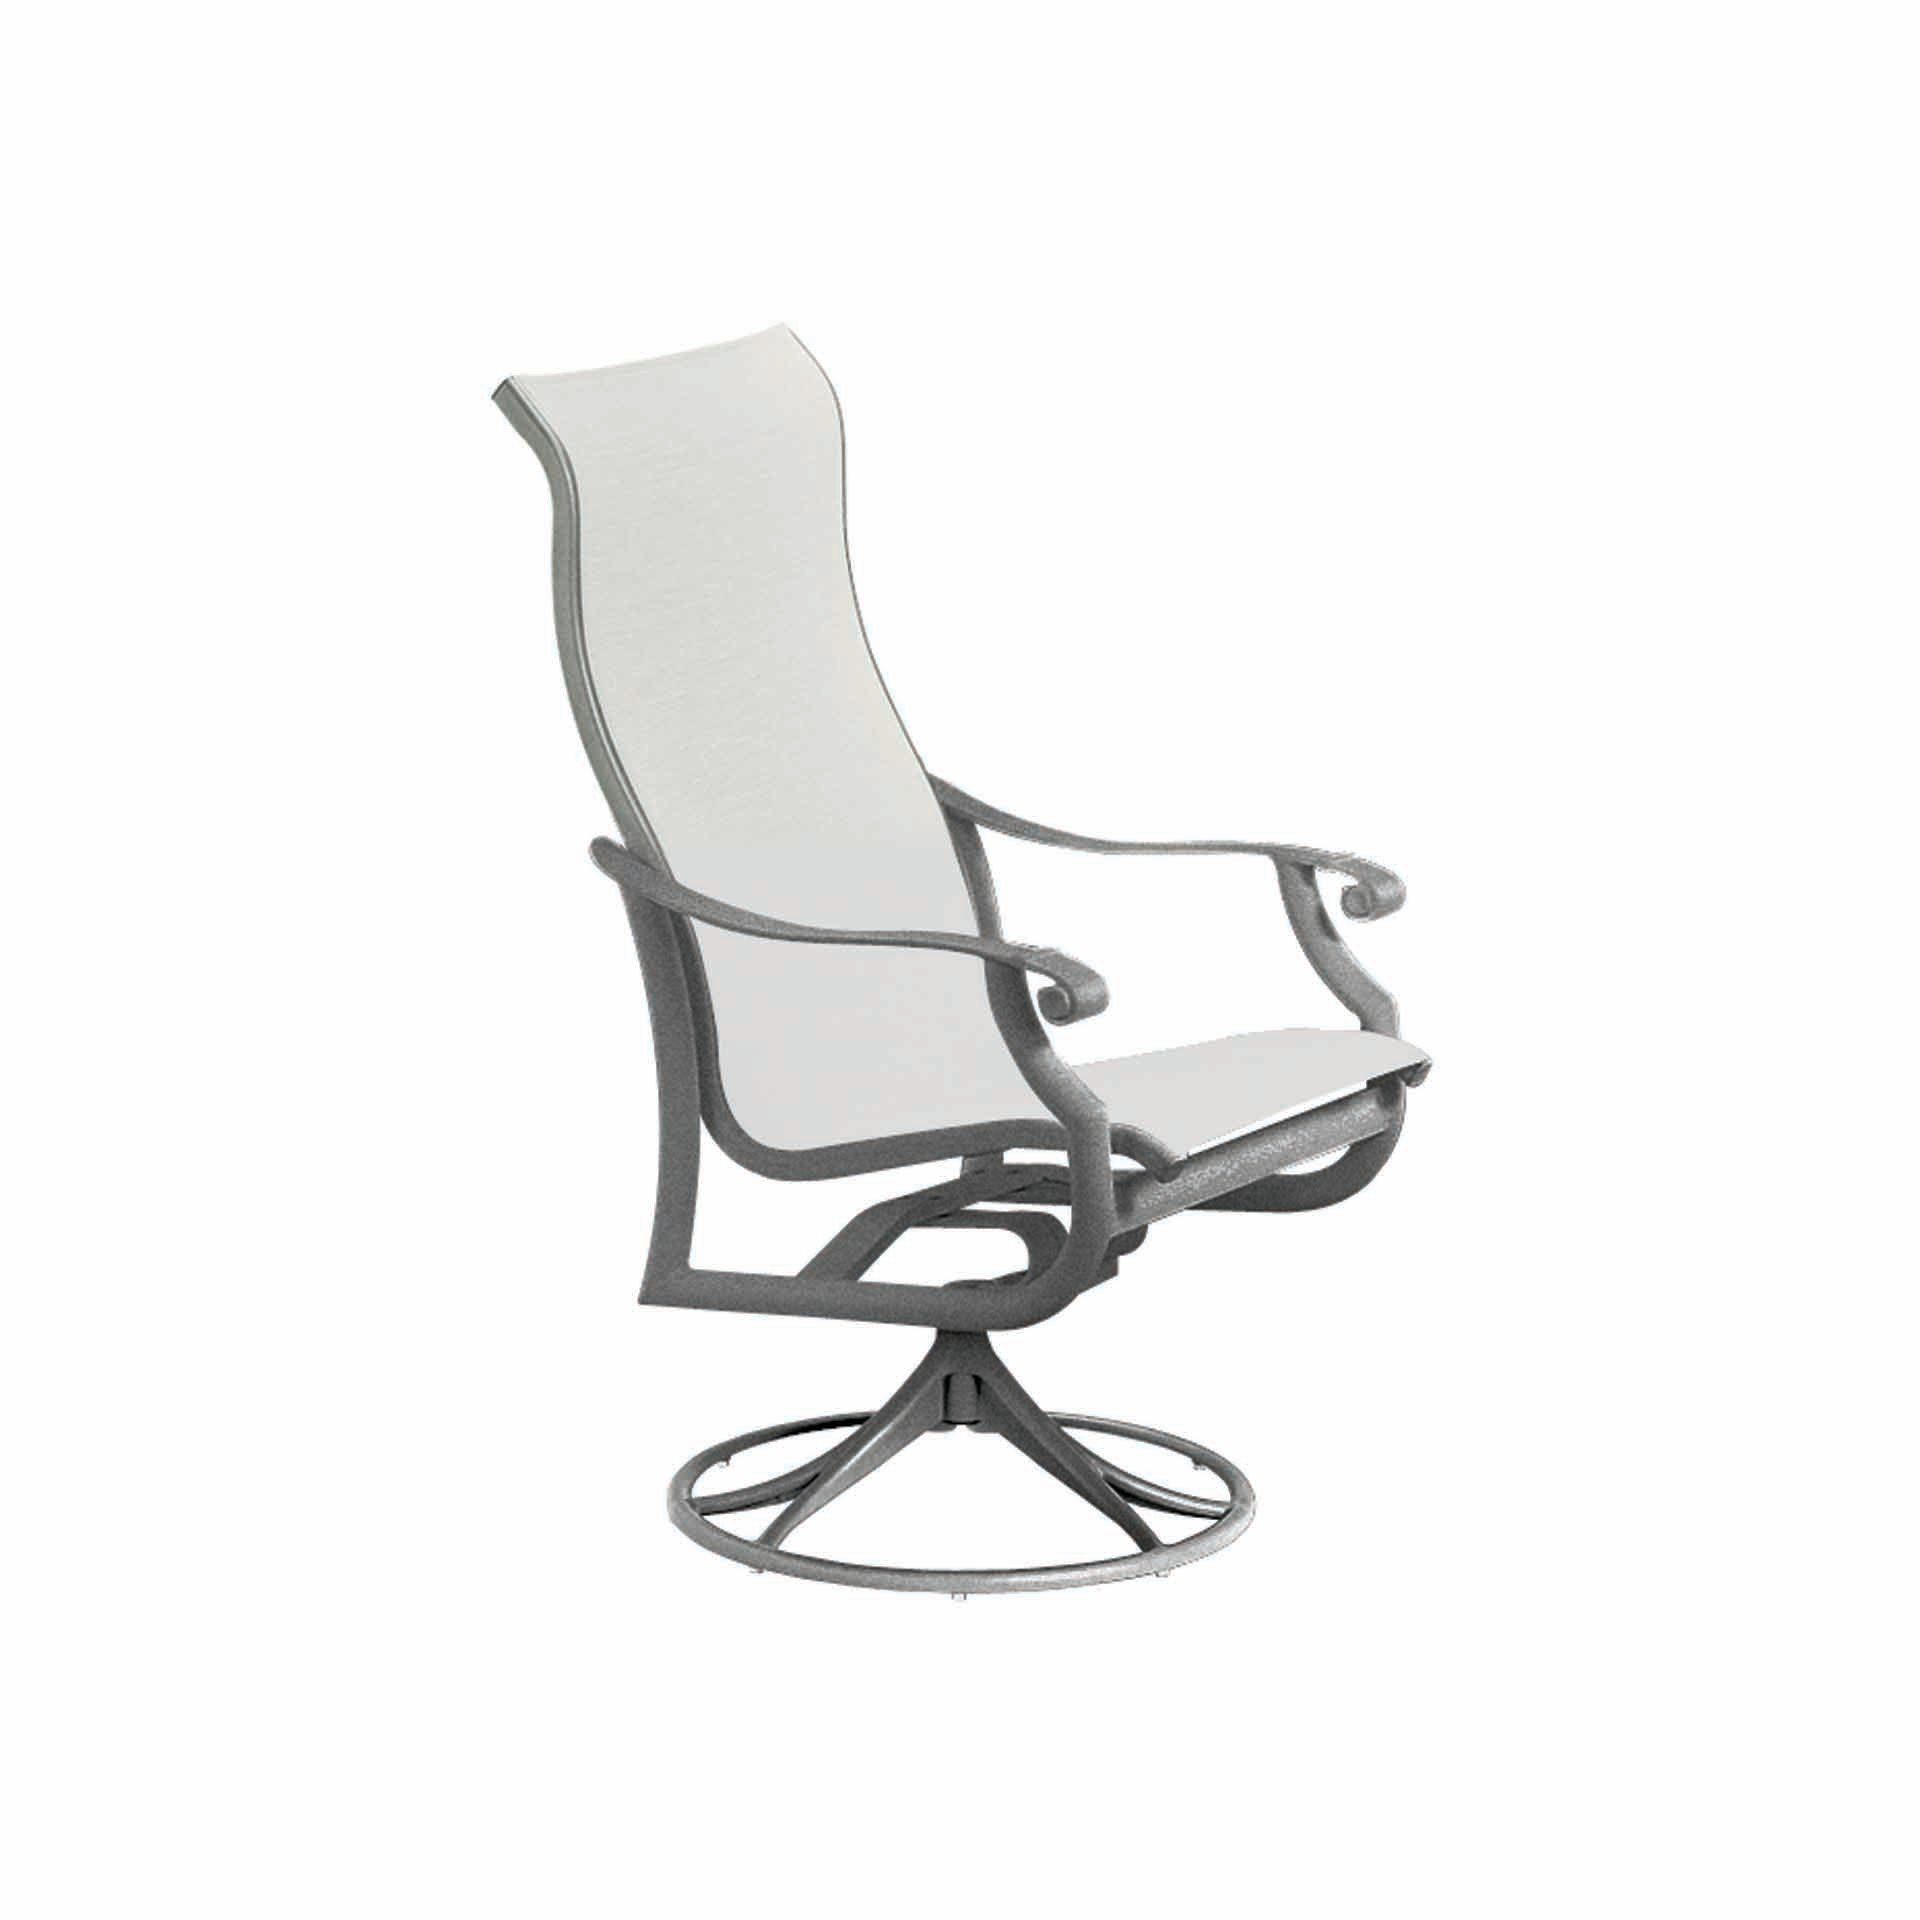 Tropitone Montreux Sling High Back Swivel Rocker Leisure